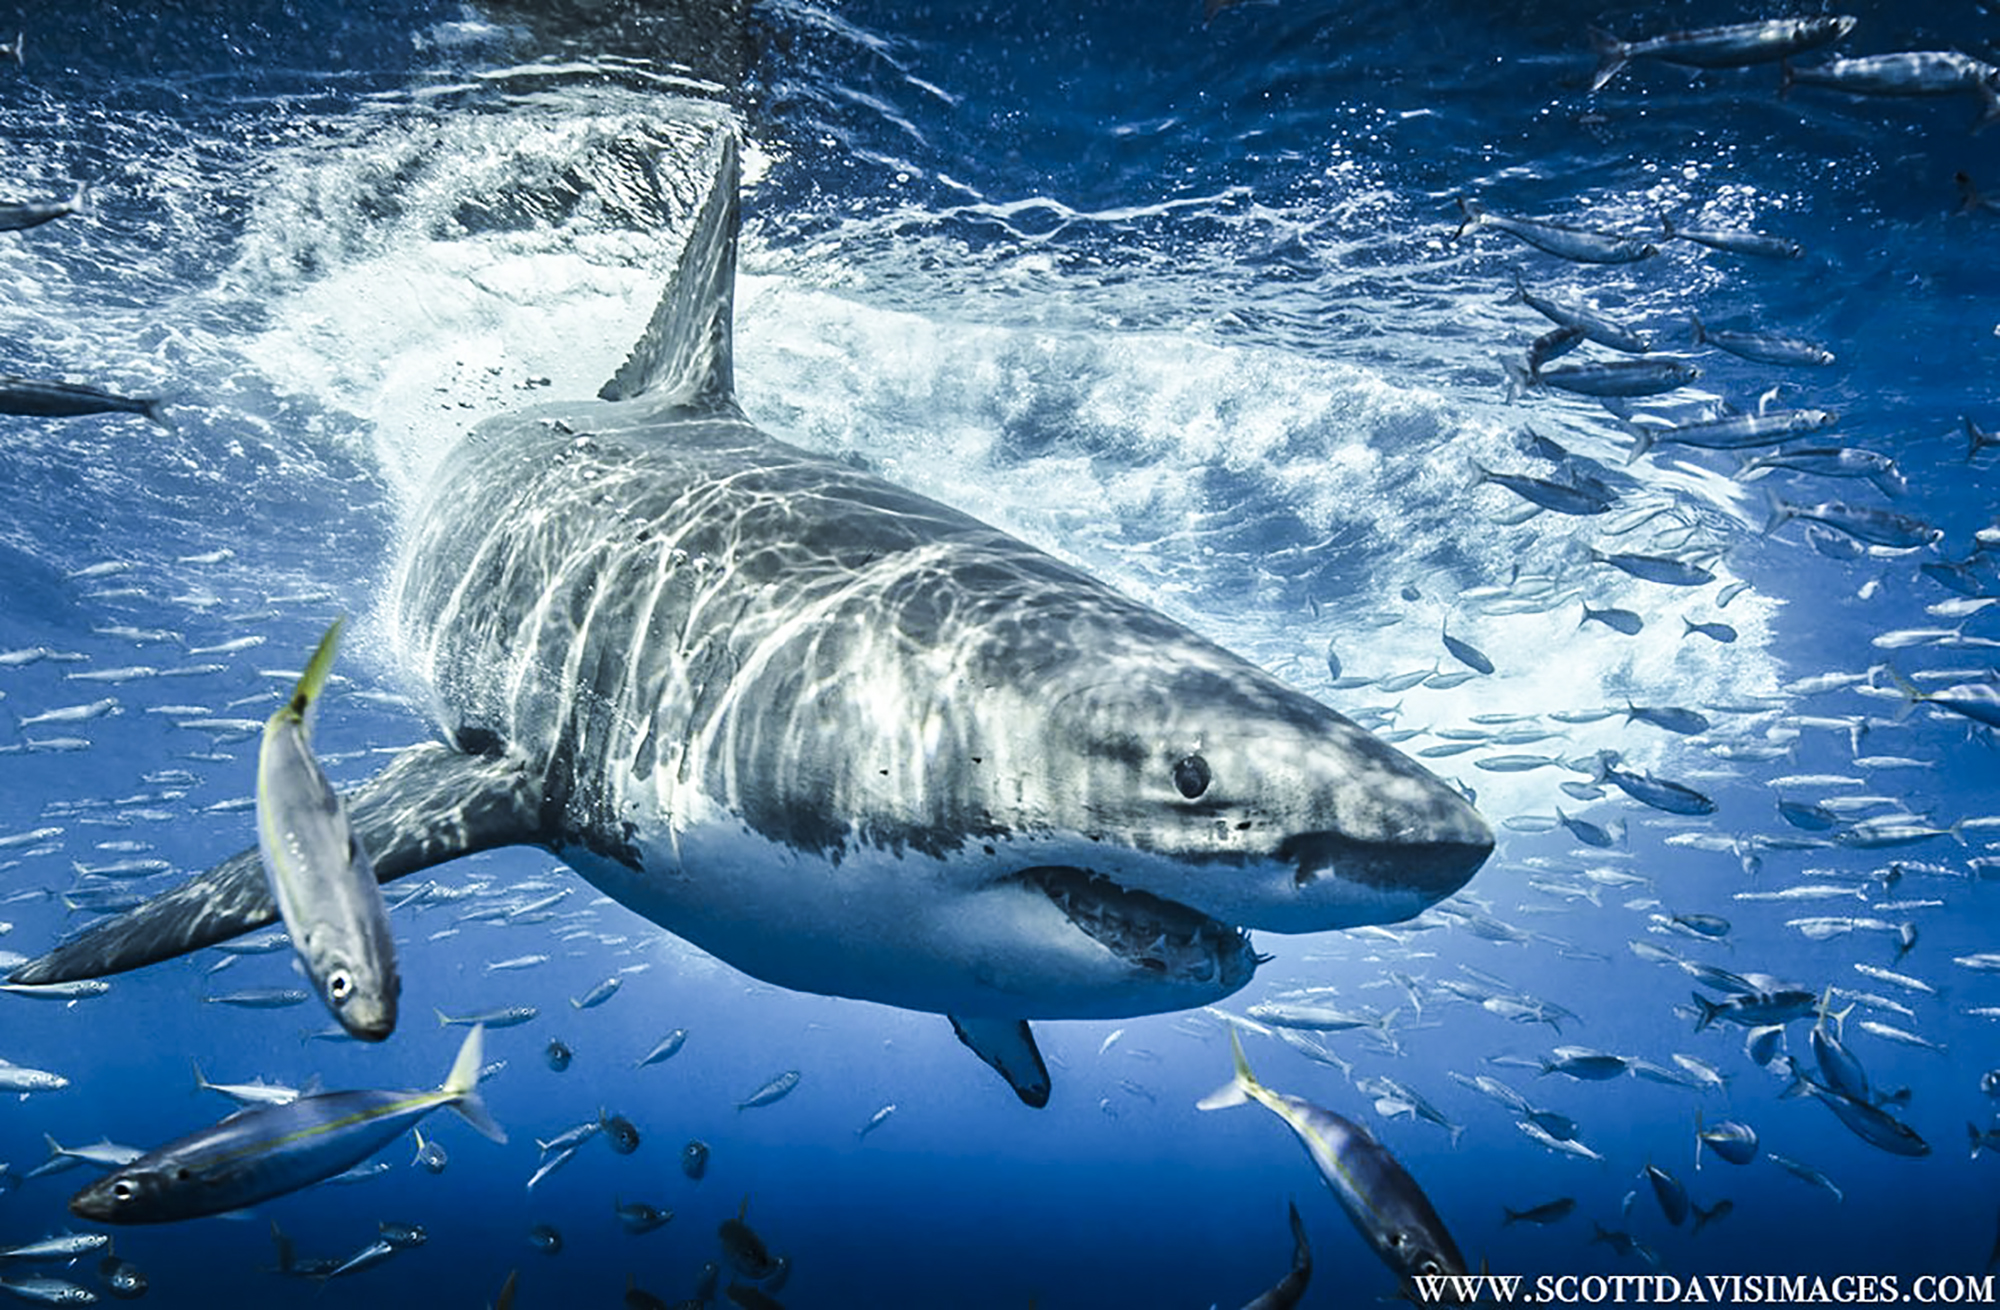 Gabriel Dives into an Amazing Experience with the Great Whites